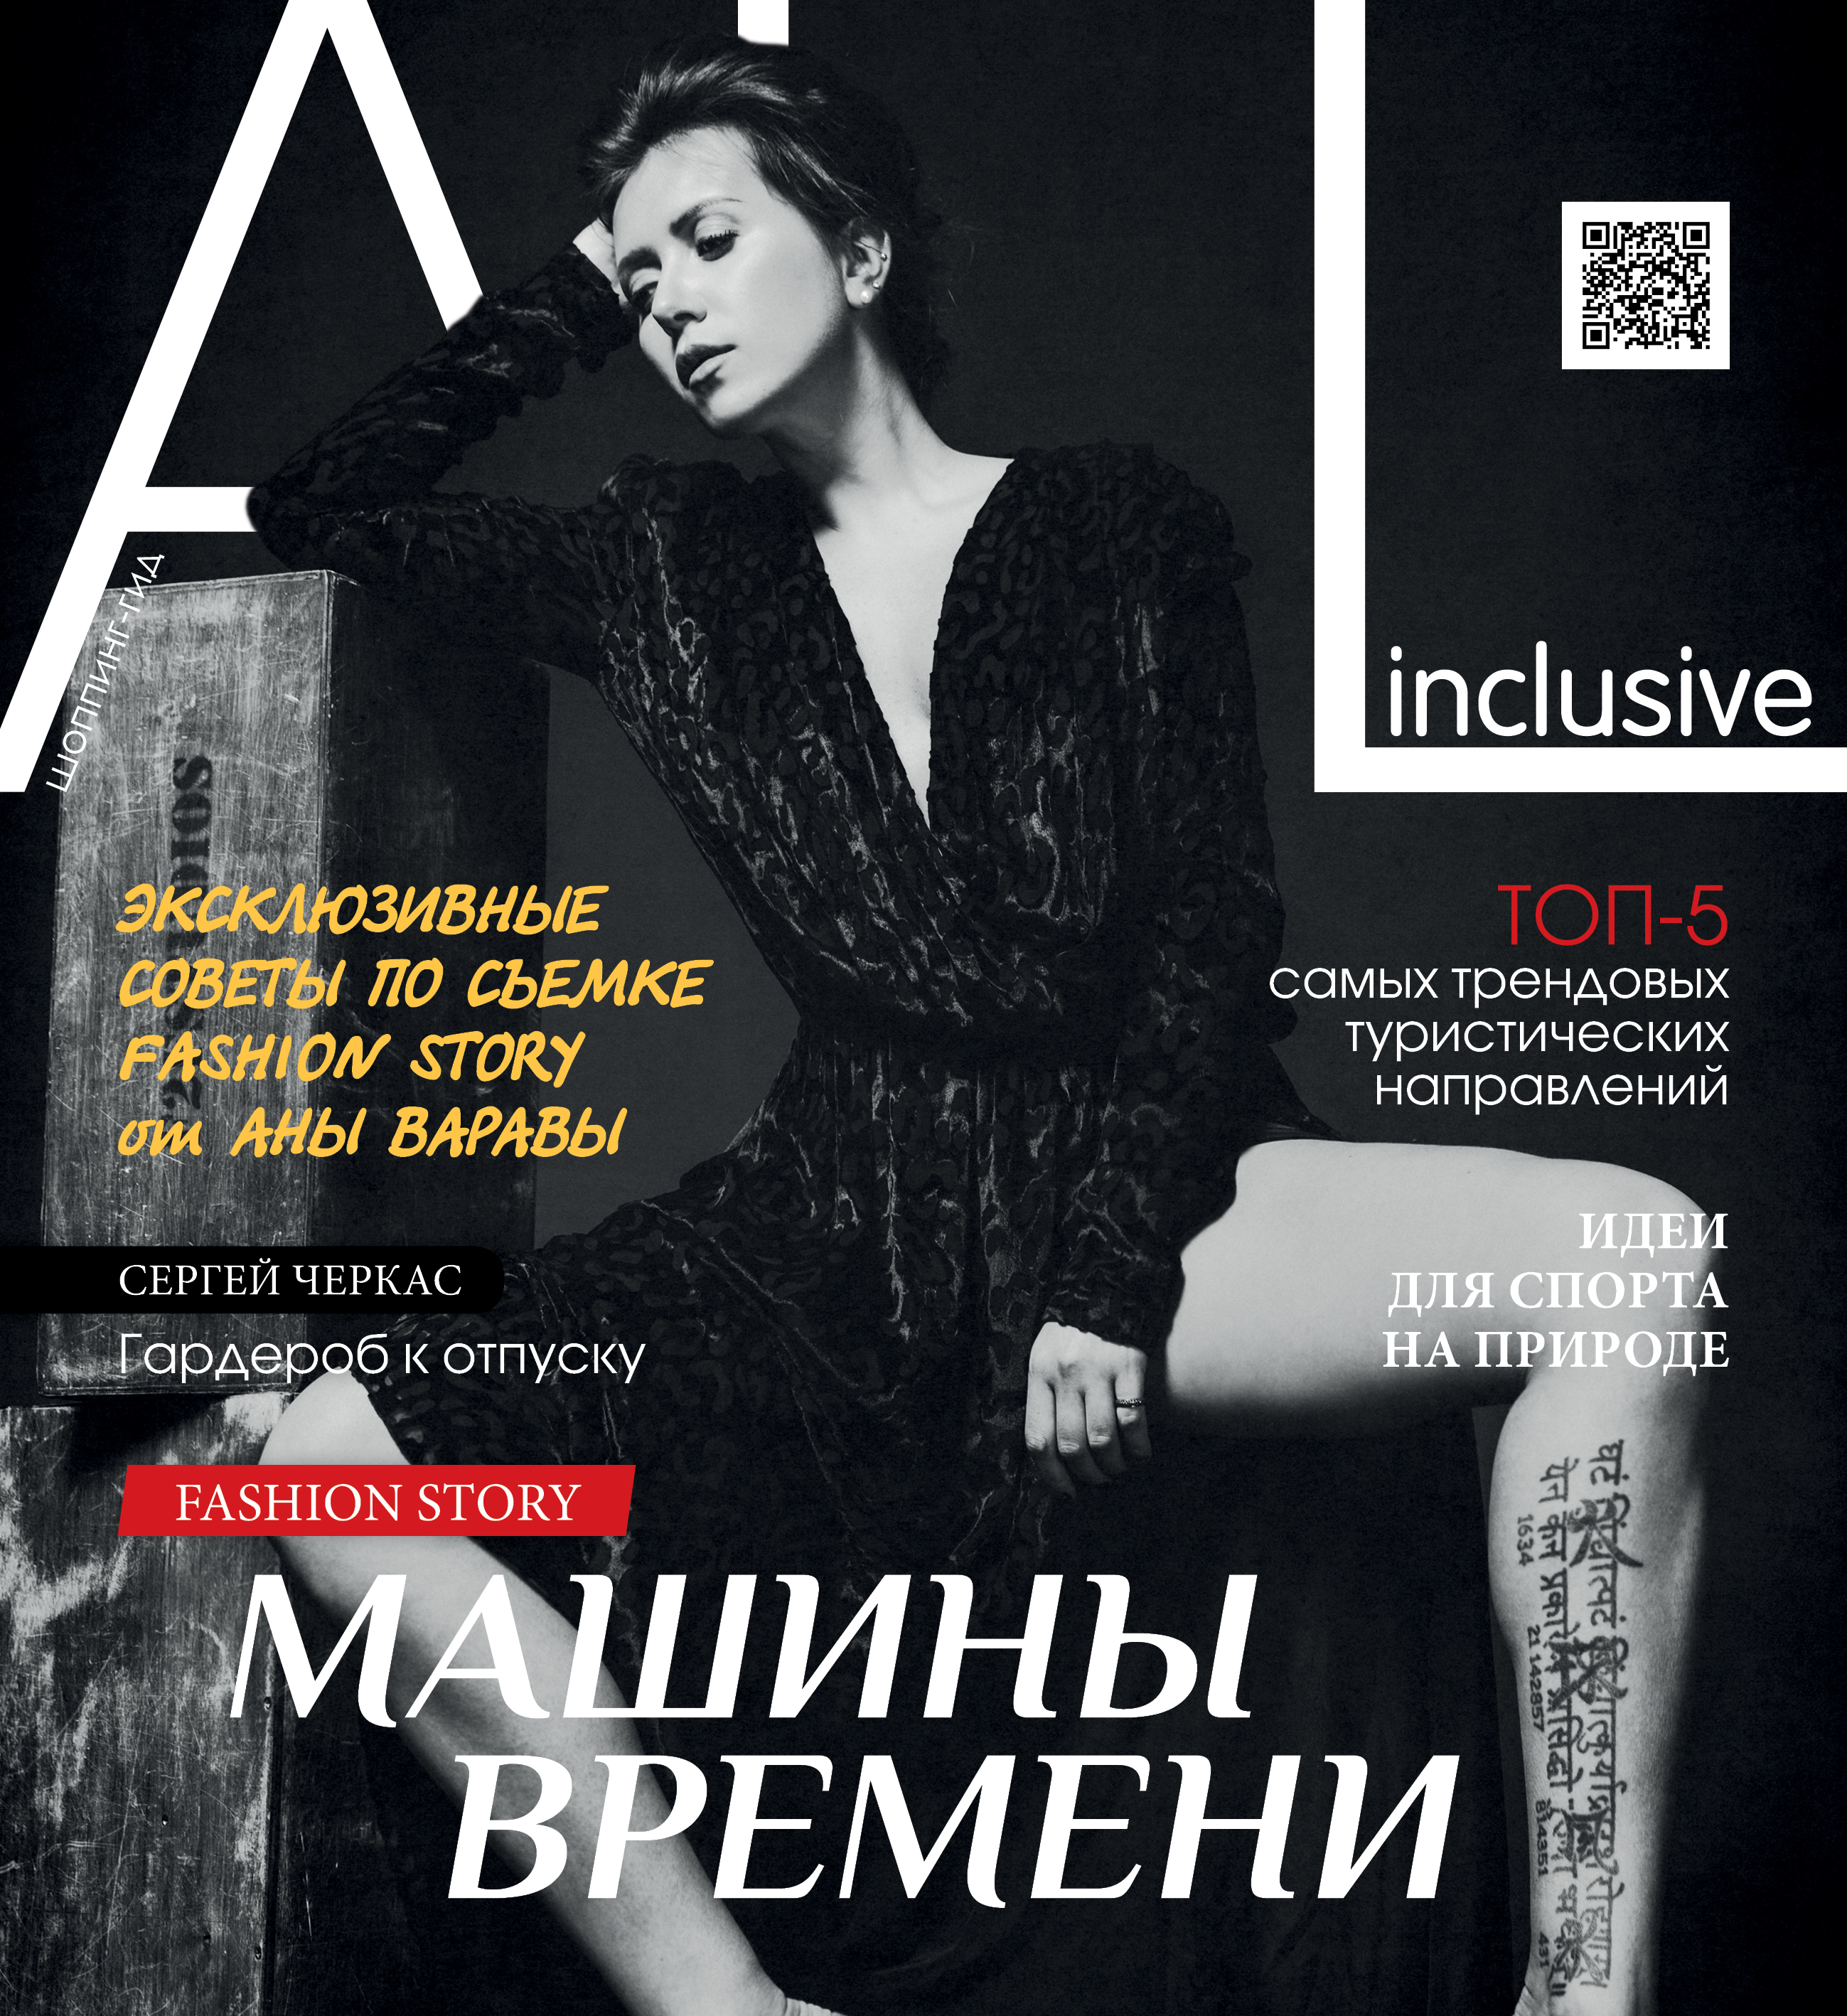 All Inclusive 22 2016 220x240 q 1 - Участник 8 сезона Dnepr Fashion Weekend - Piton.io